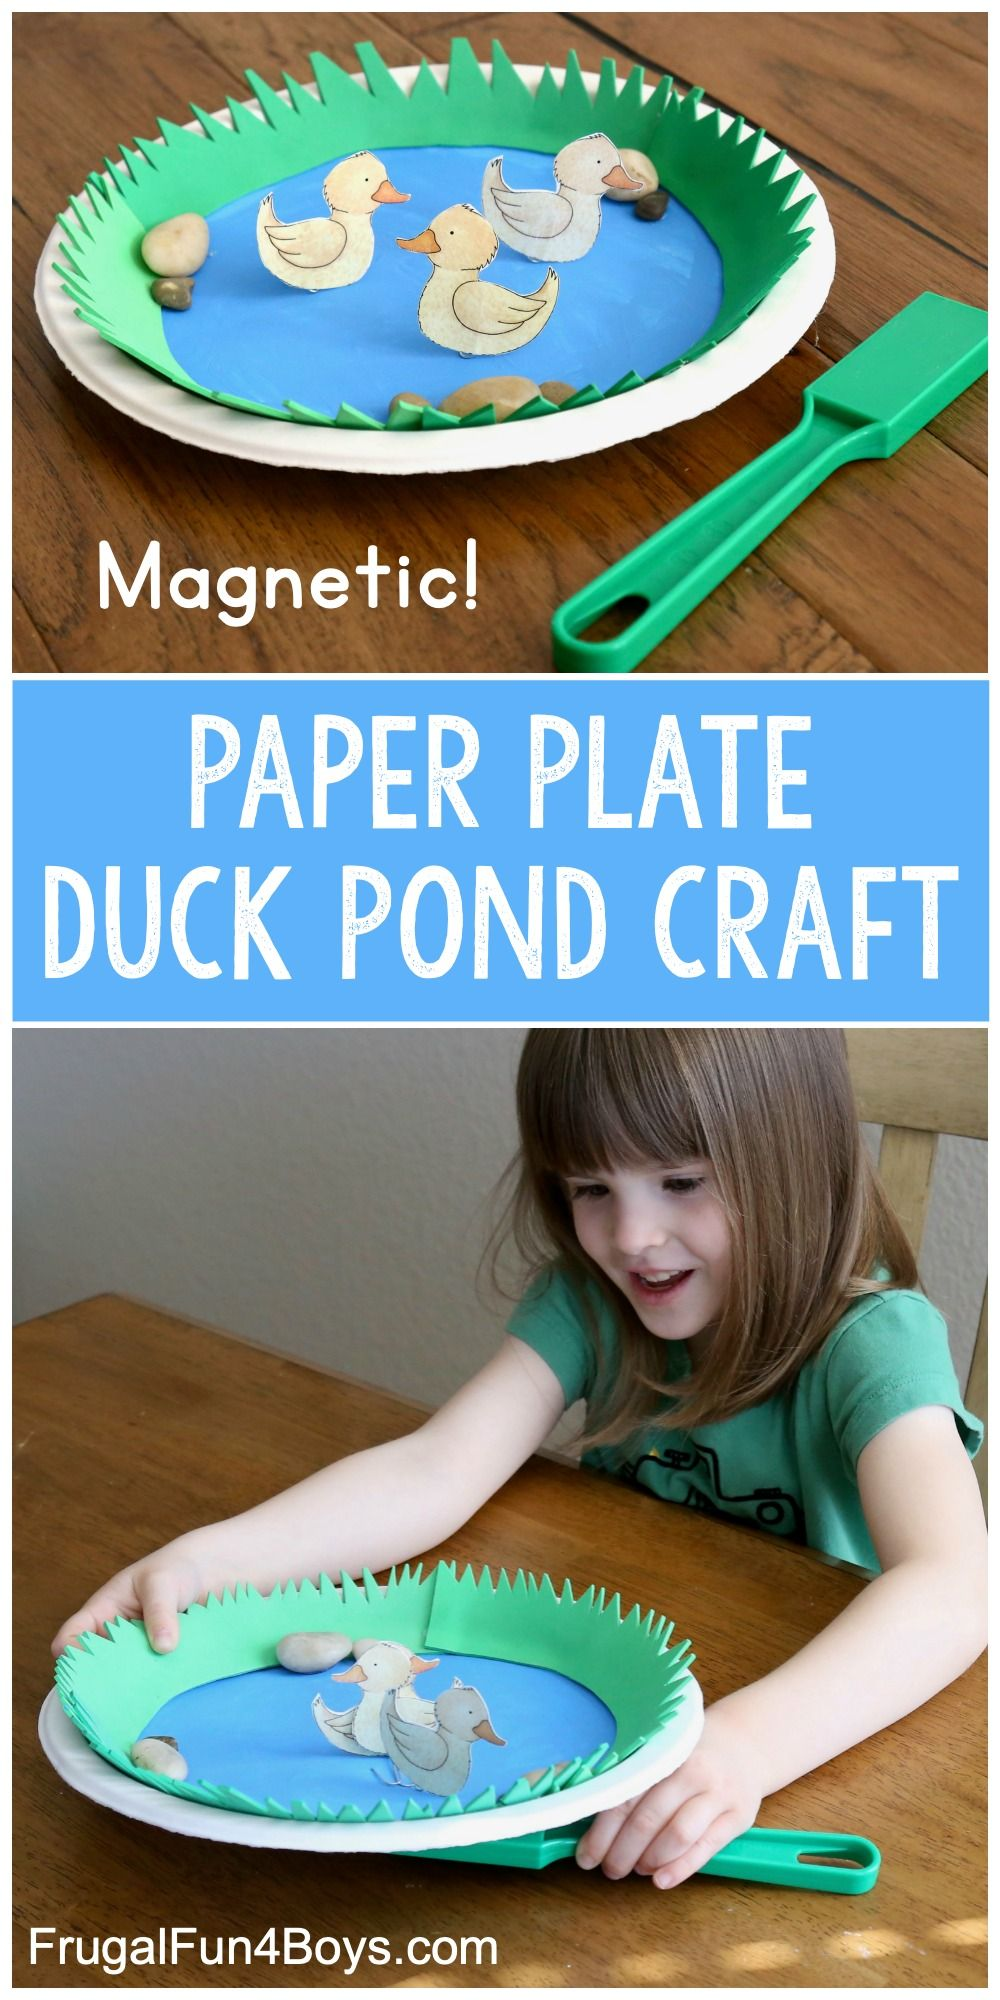 Spring Crafts for Kids: Paper Plate Magnetic Duck Pond - Frugal Fun For Boys and Girls